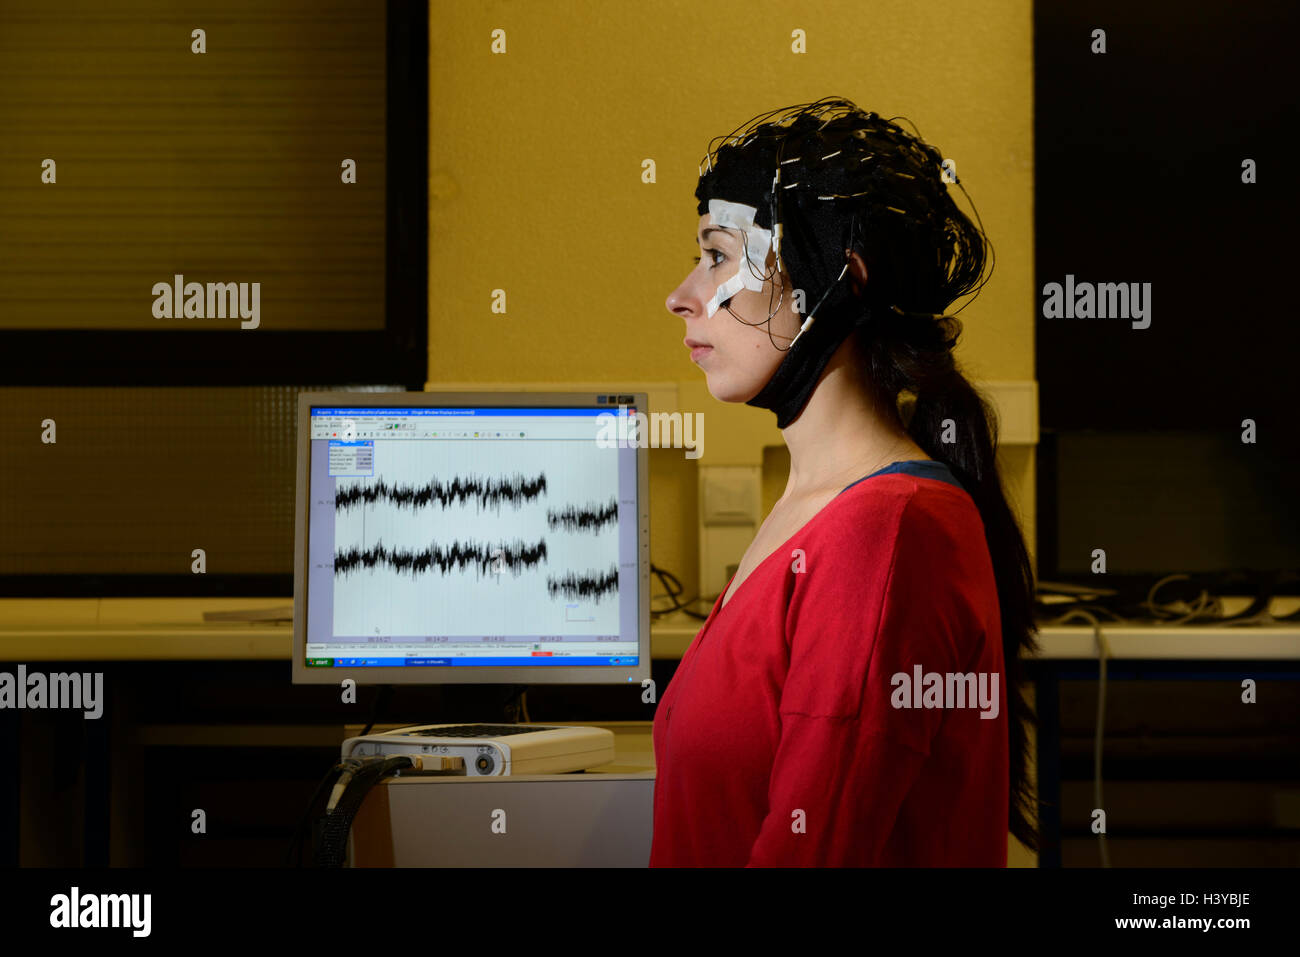 Person undergoing an electroencephalogram with an EEG cap to scan her brain's electrical activity - Stock Image